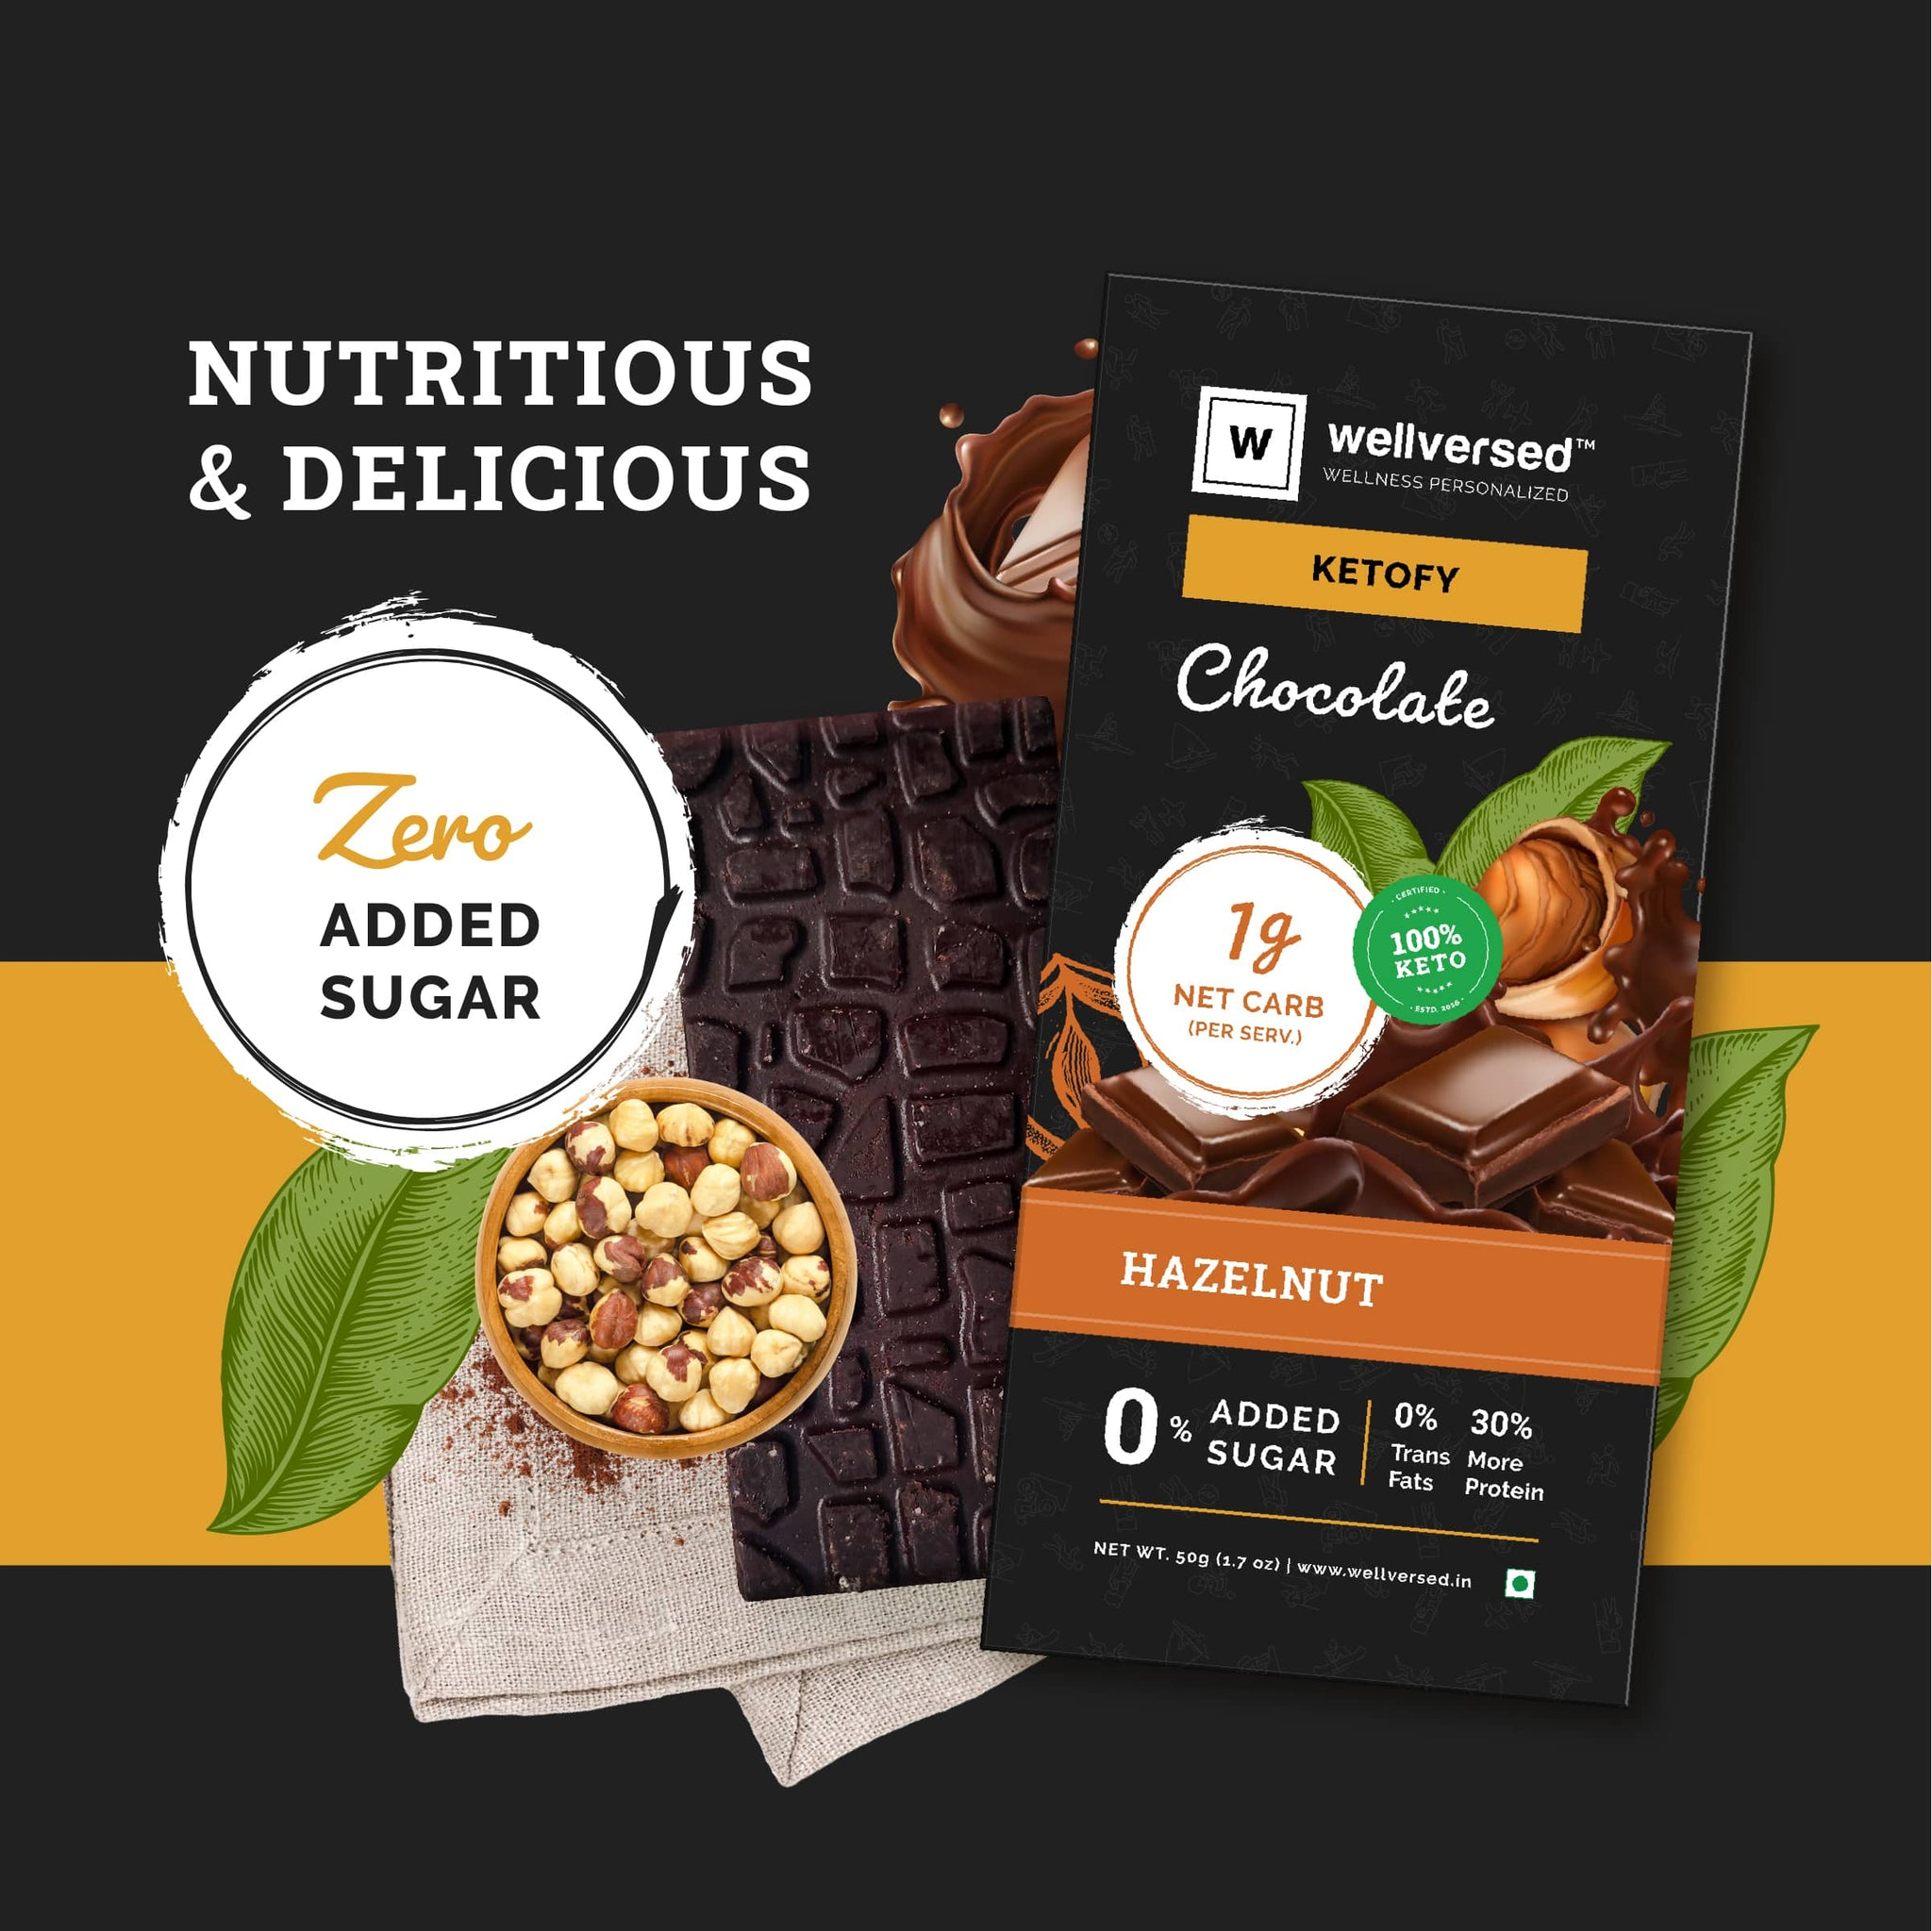 Ketofy Hazelnut Chocolate | Sugar Free